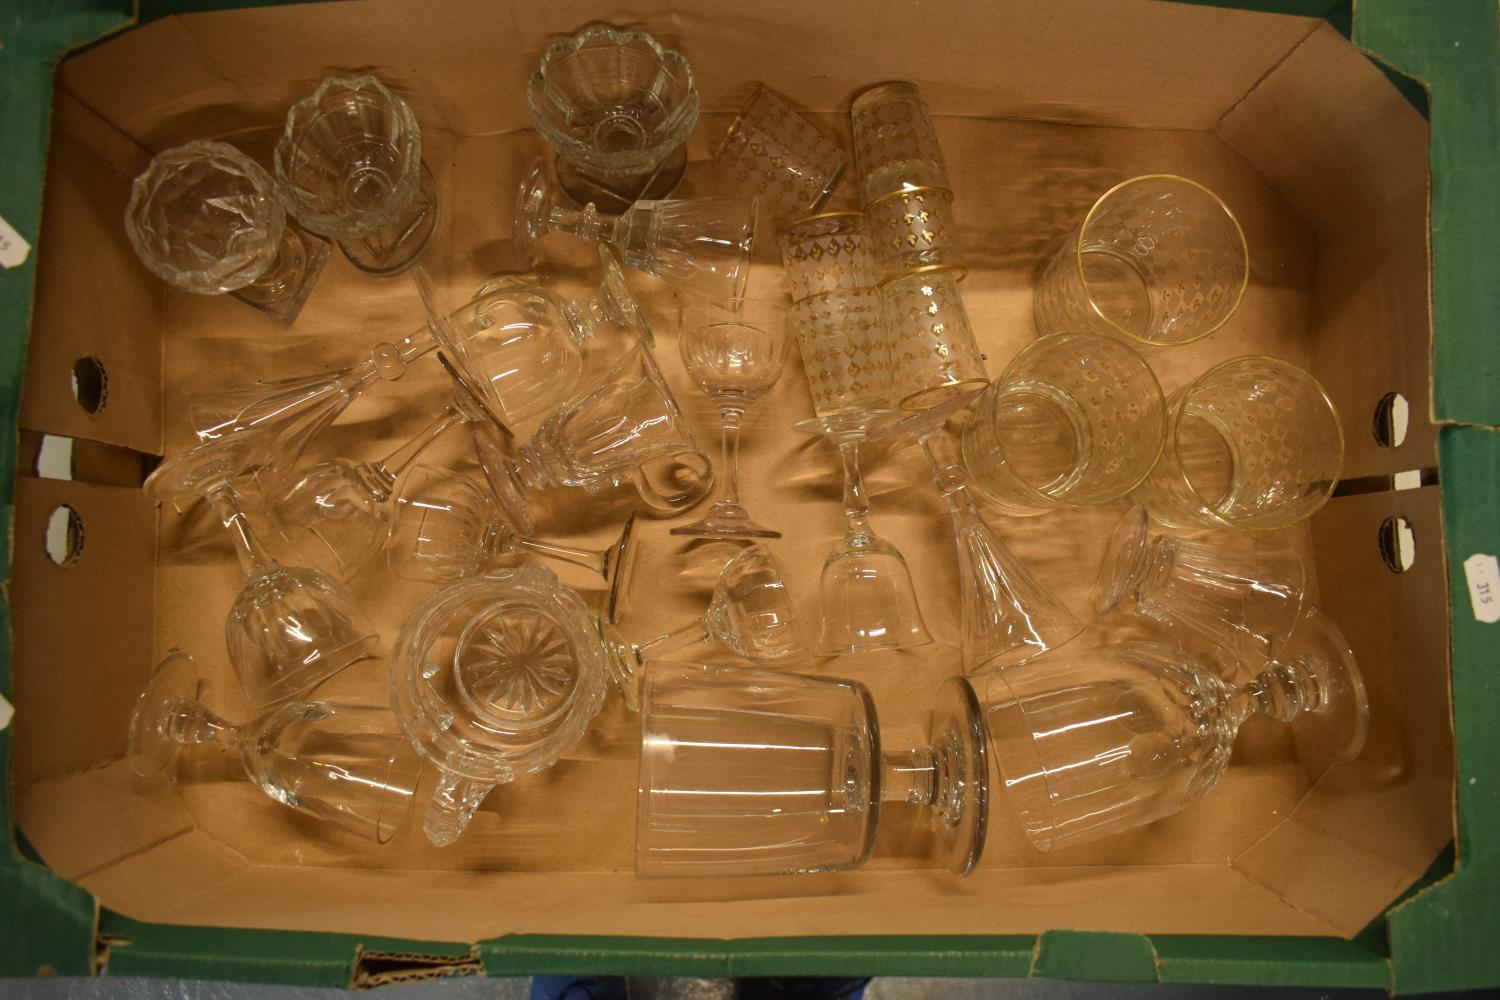 A collection of 19th and 20th century glassware to include tumblers, glasses, monteiths etc . No